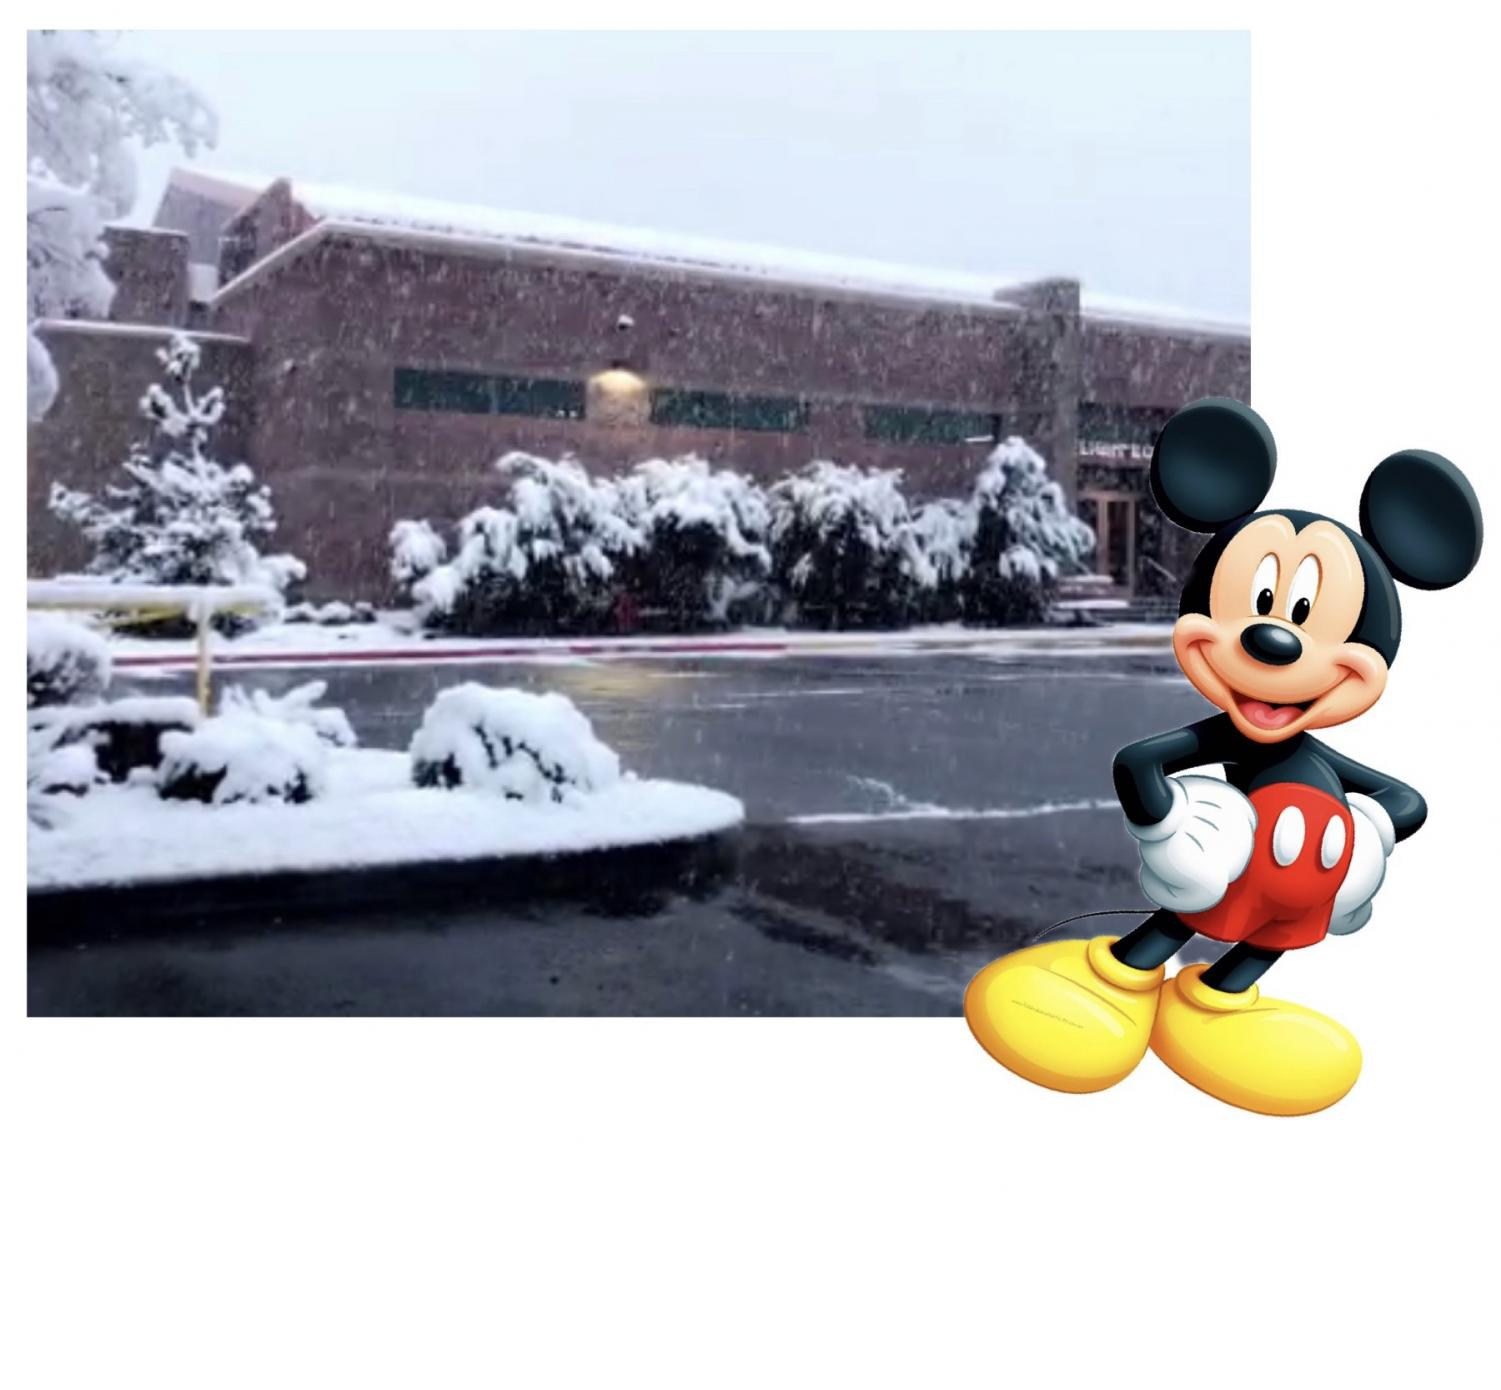 The annual Disney ditch day trip to conclude the class of 2019's senior week will still take place tomorrow, February 22, even with the mass amounts of snow.